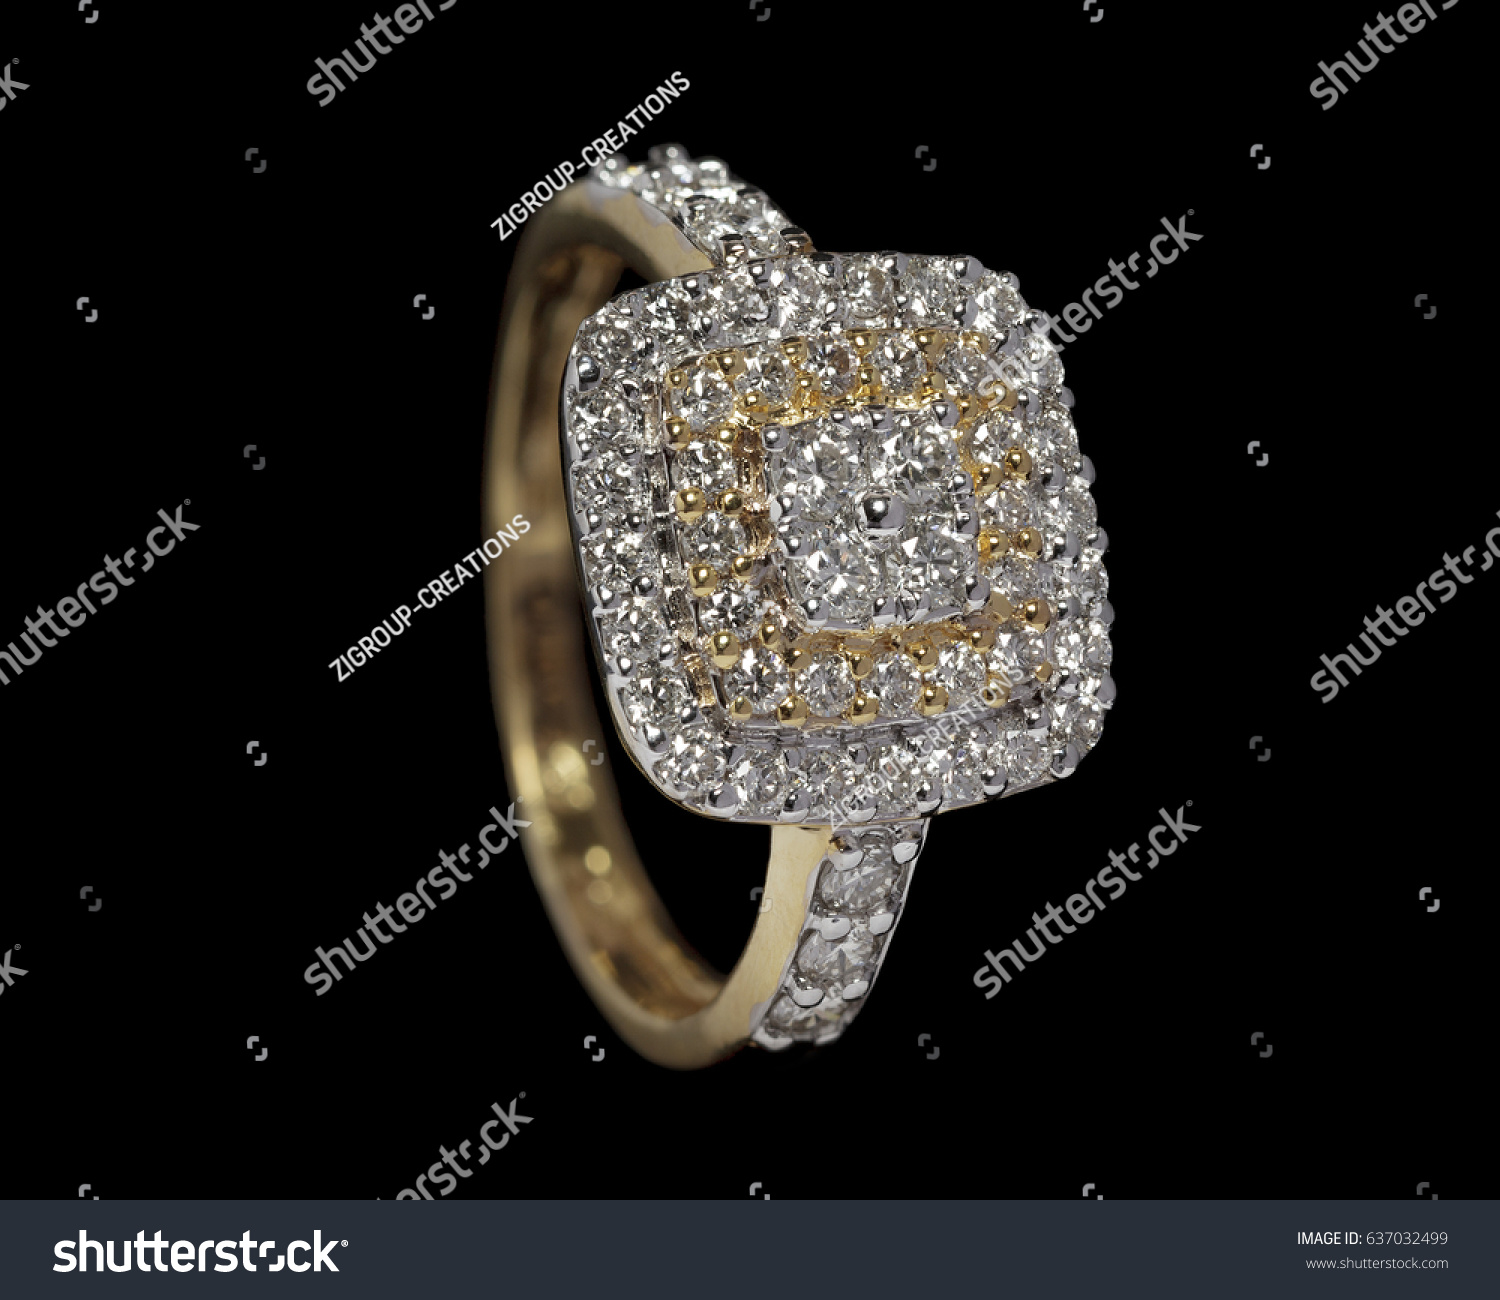 royalty caymancode sketch stock diamond image black photo free drawn